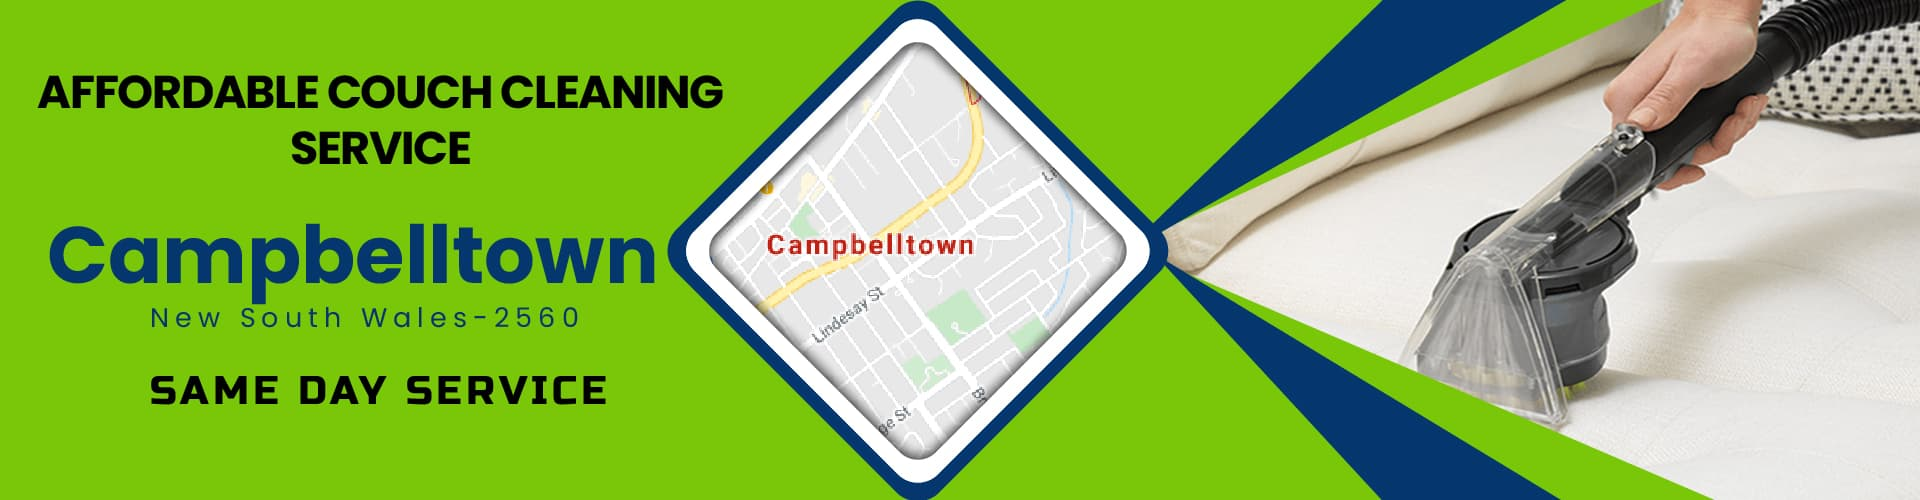 Couch Cleaning Campbelltown